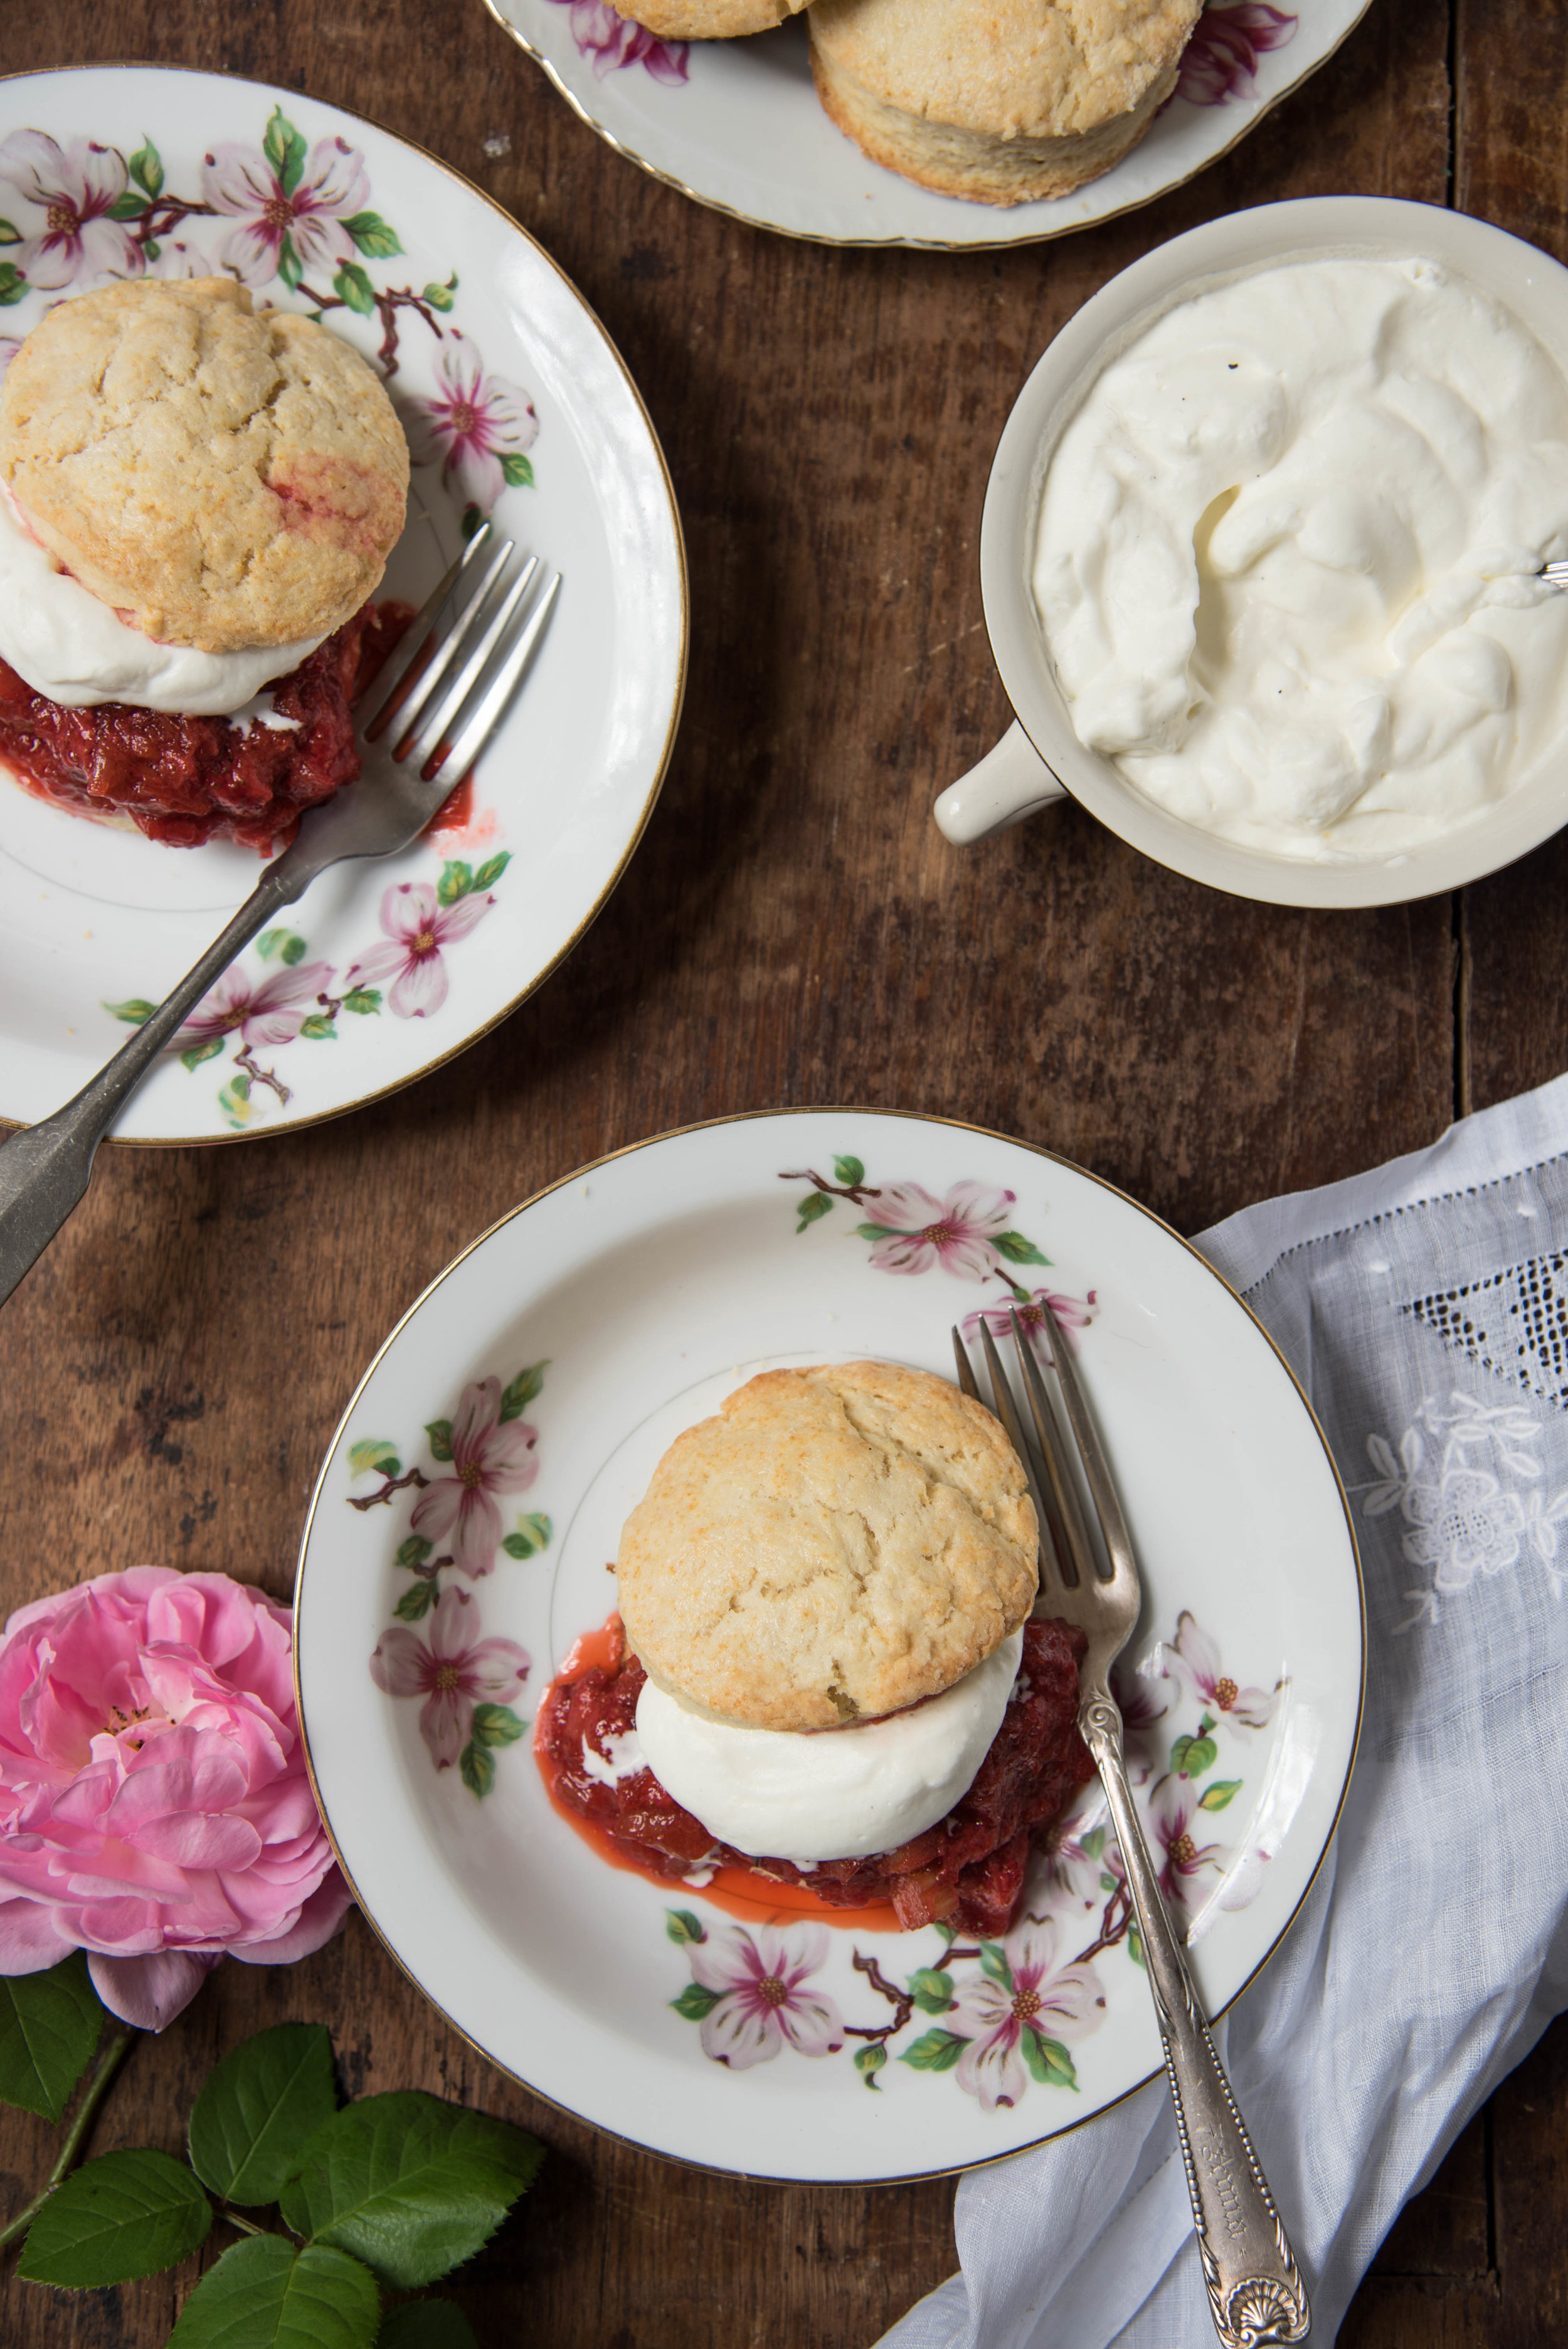 ROSE & IVY Journal Strawberry Rhubarb Shortcakes